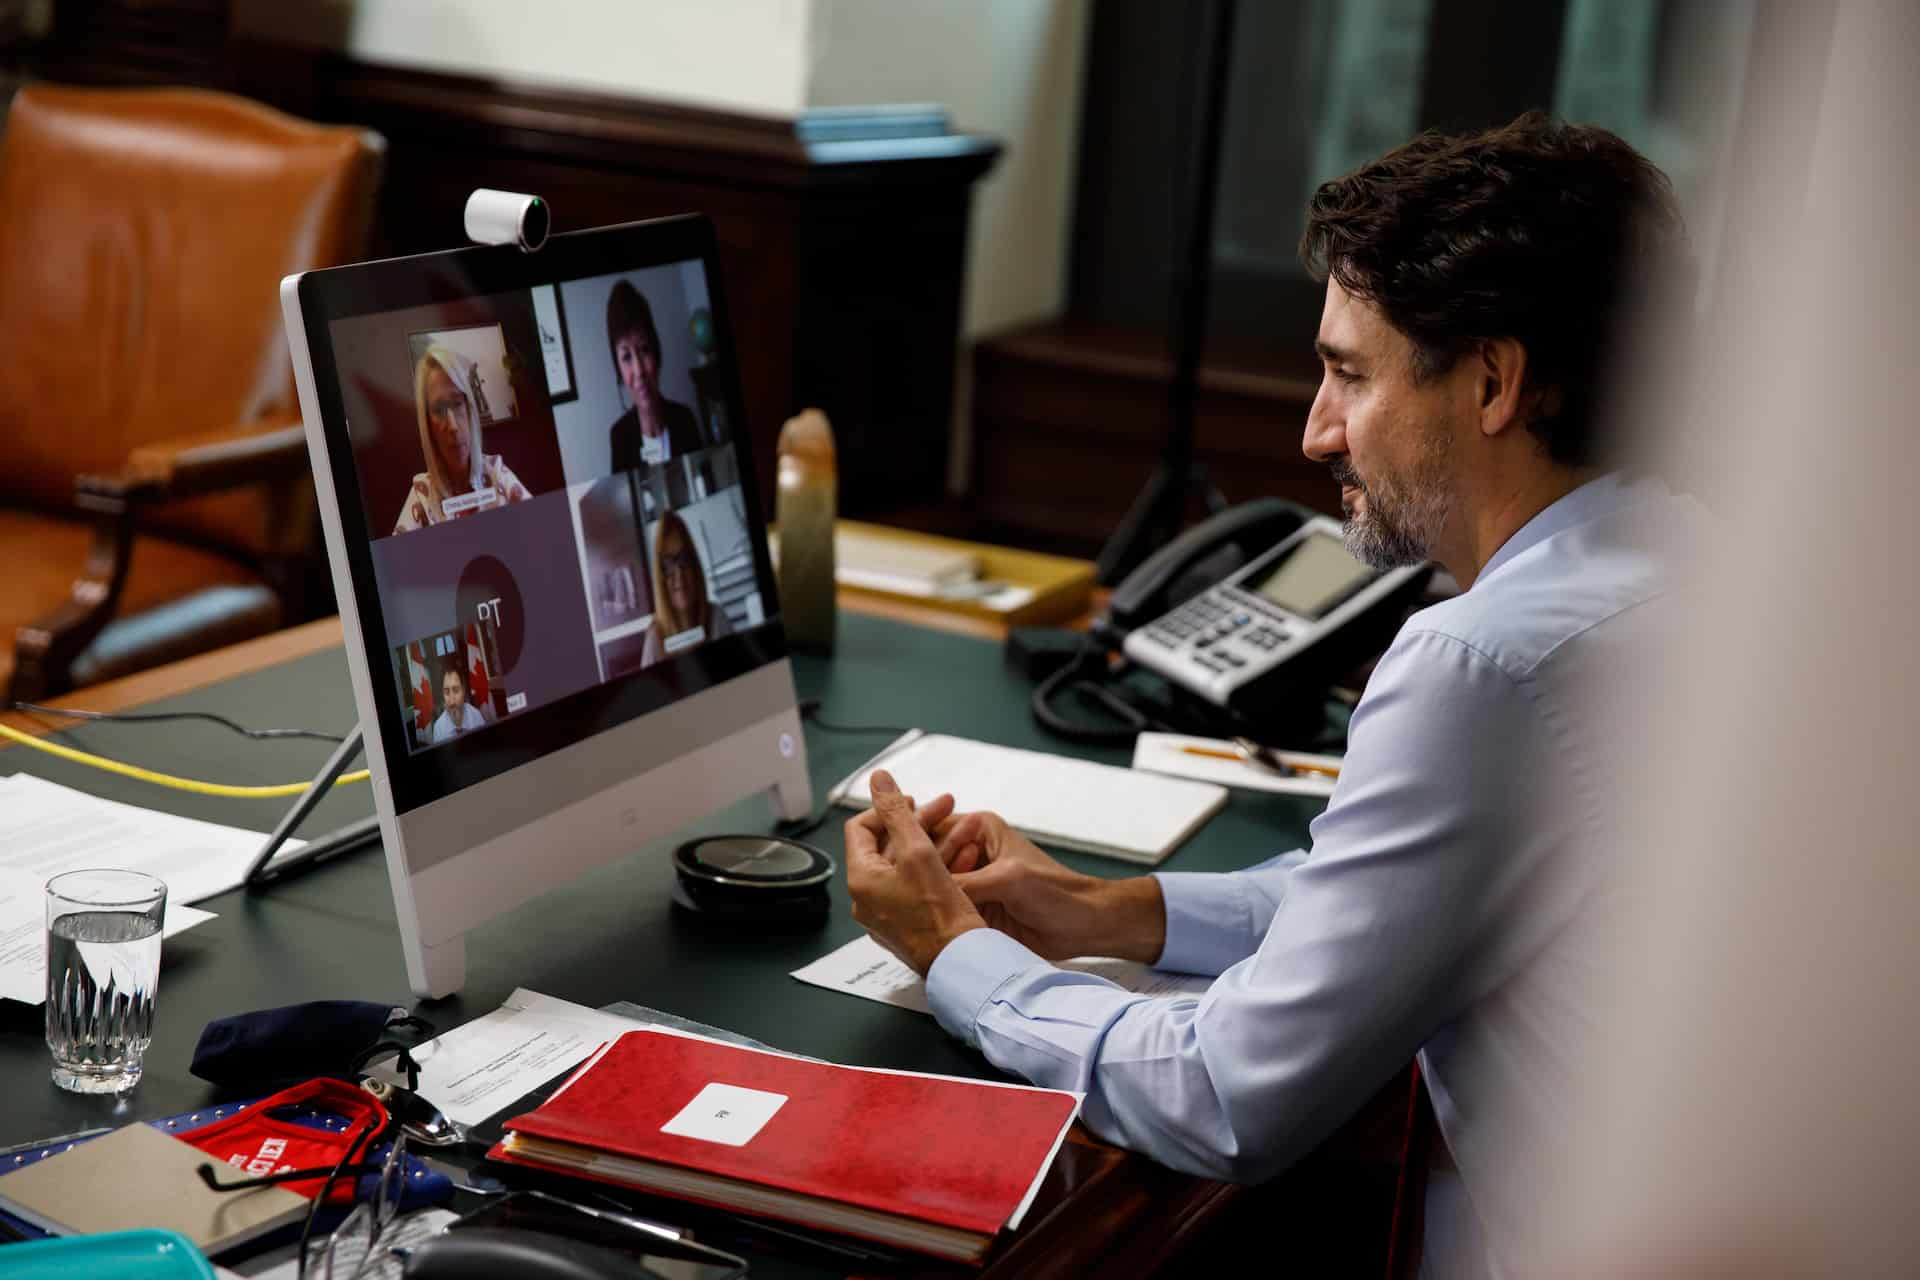 Prime Minister Justin Trudeau on video conference call with Pam Damoff and Best Life Rewarded